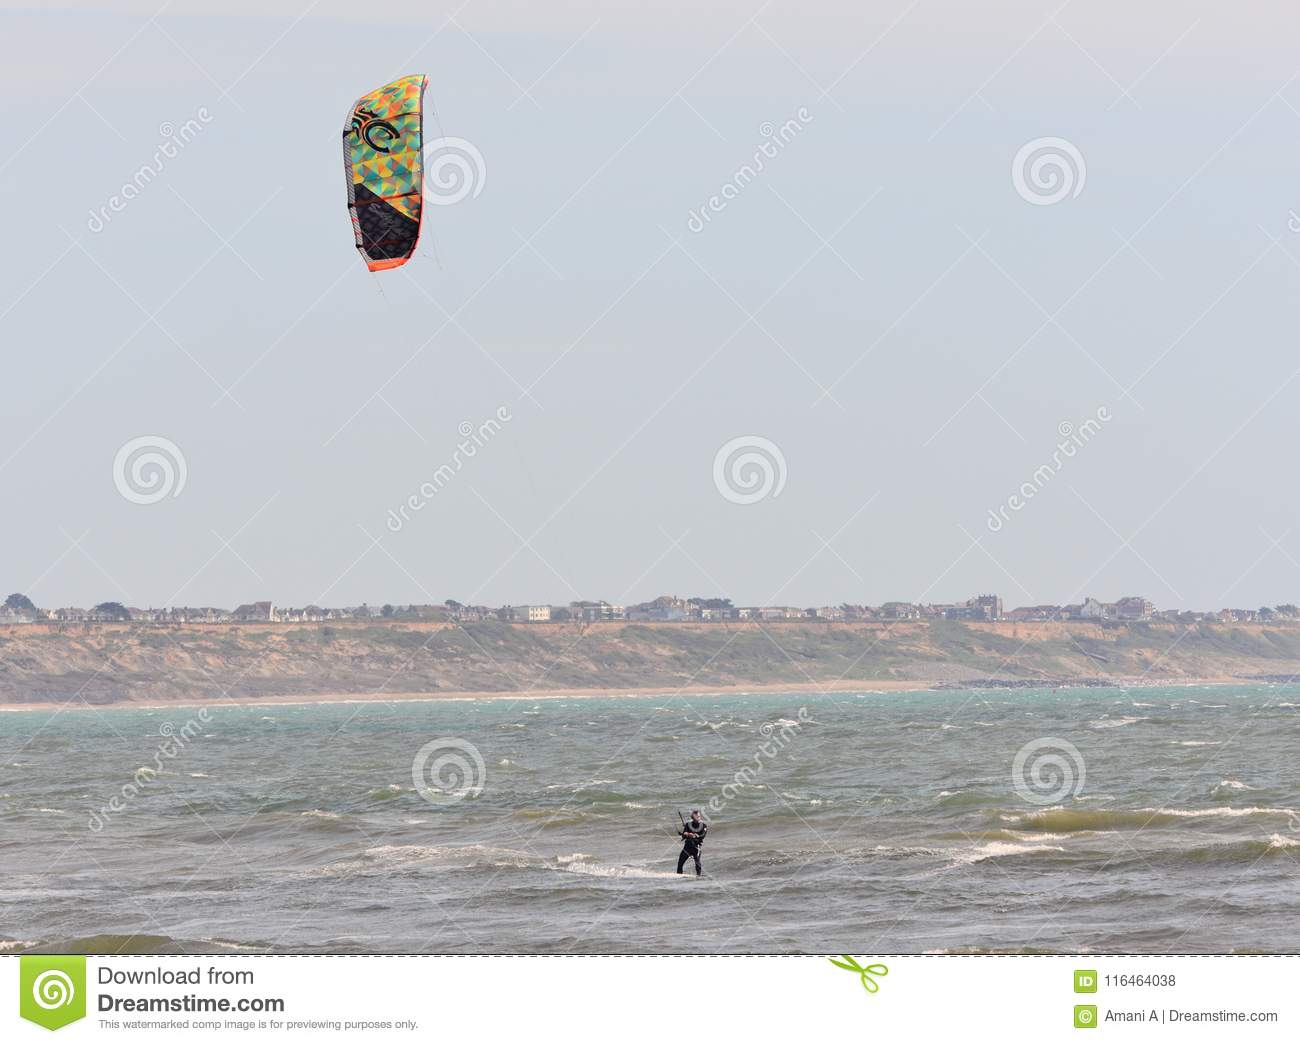 Recreational Water Sports Action. A Kiteboarder riding the waves. Dorset, UK. May 2018.